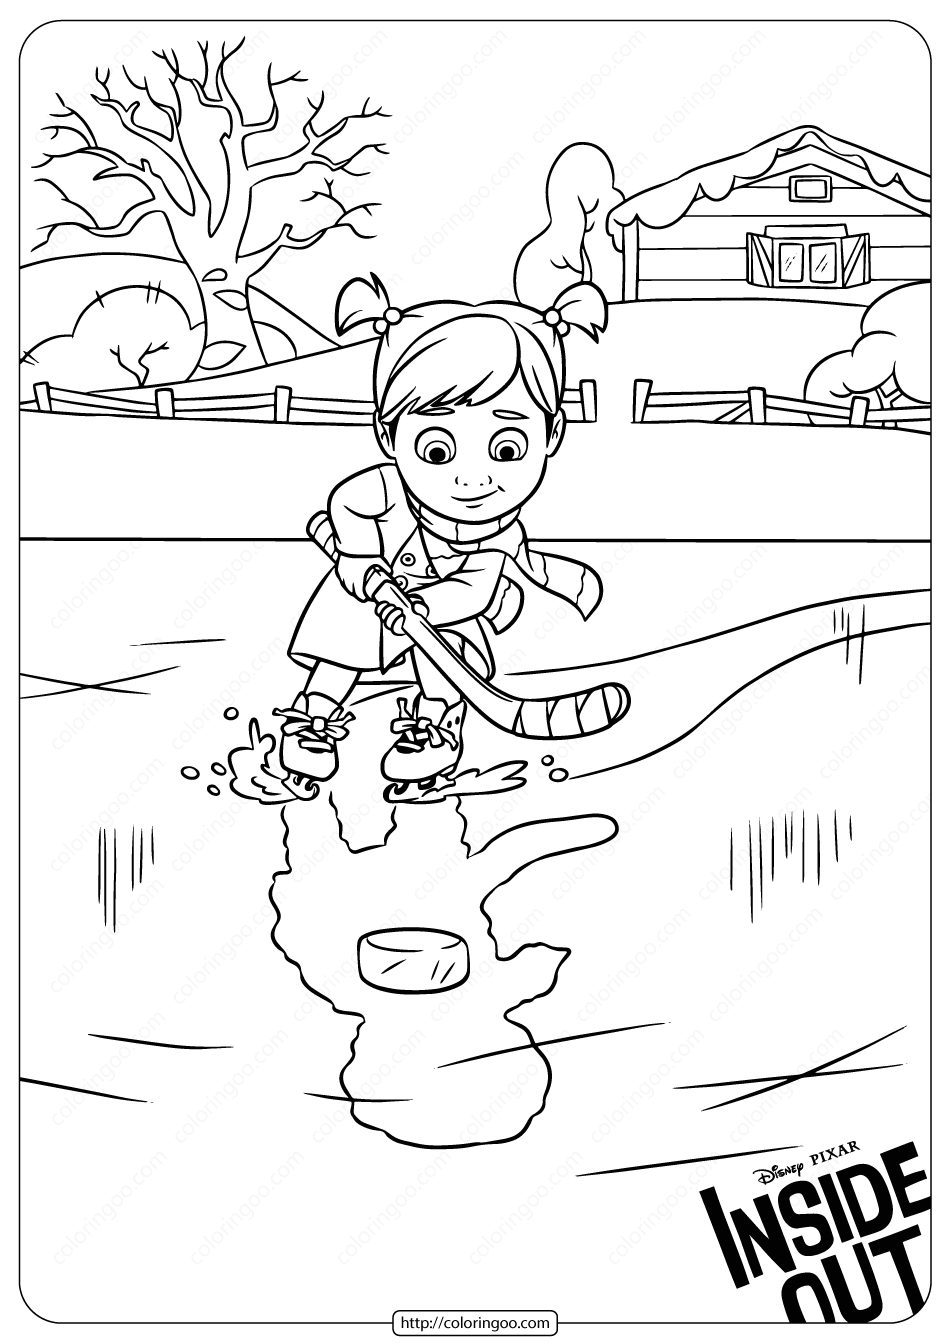 Disney Inside Out Riley Coloring Pages